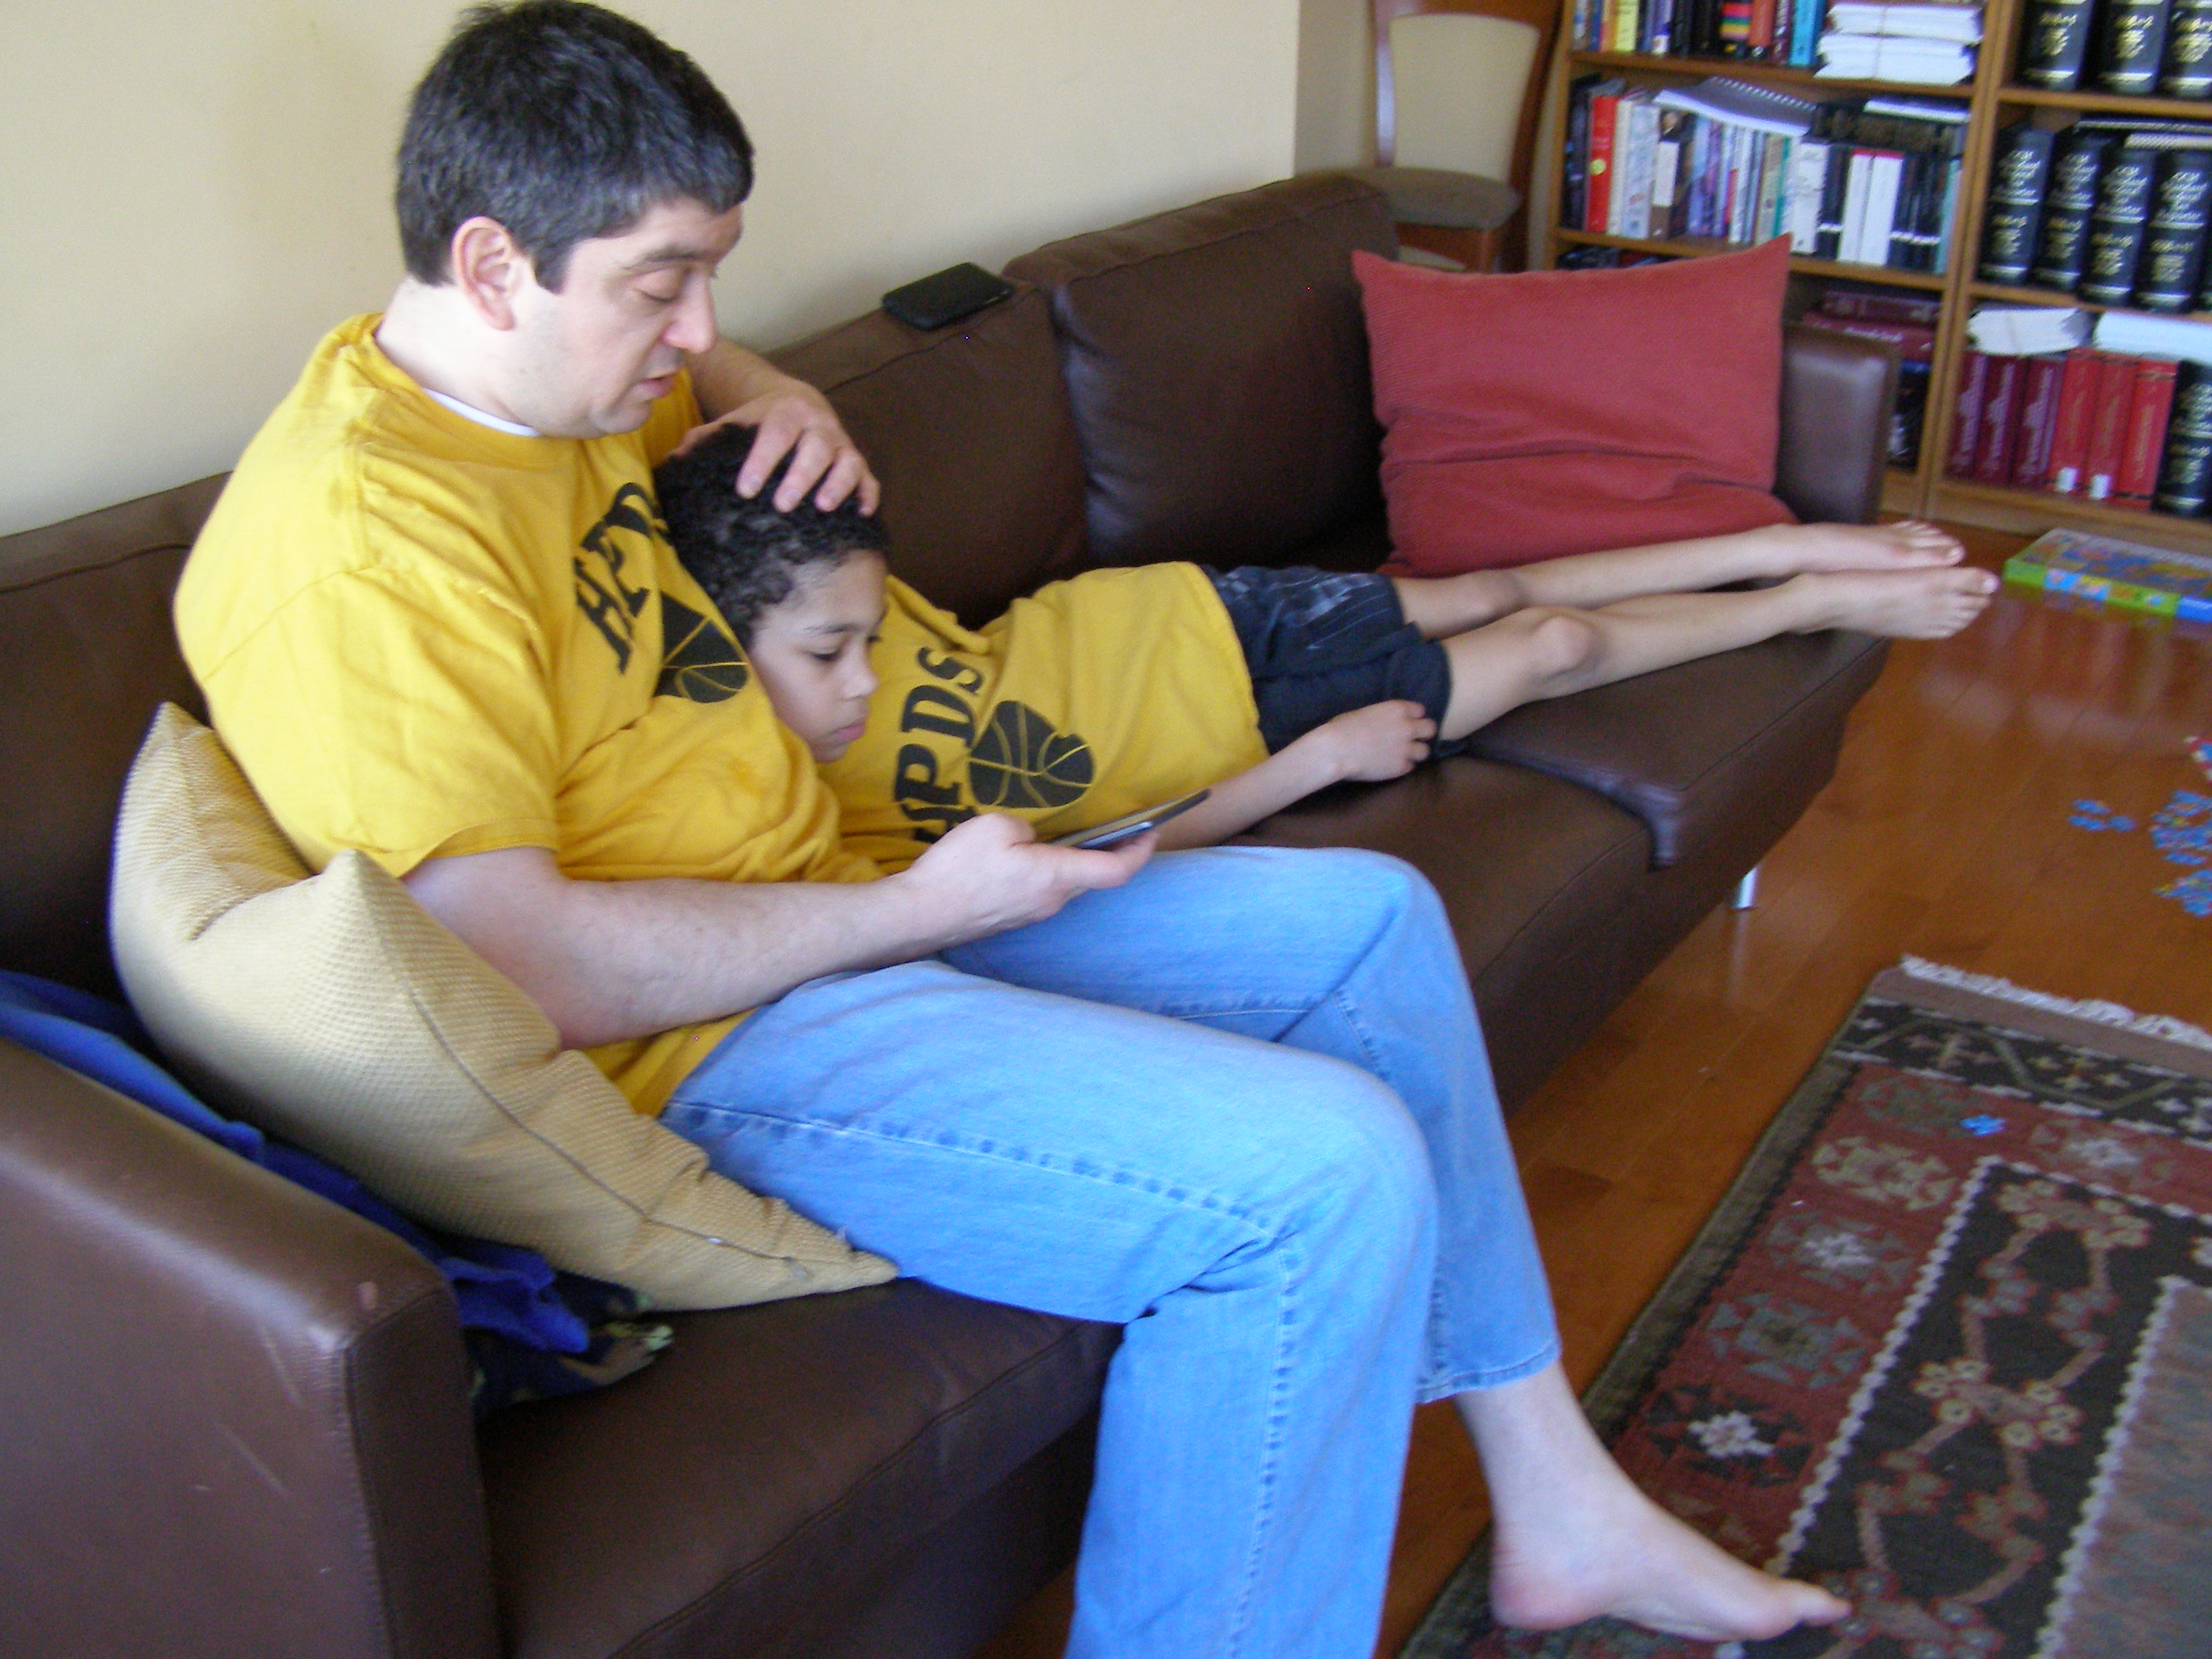 David Forst and his son Jacob read Tom Sawyer off their Kindle in their Chicago home. (Julianne Hill/Front and Center)